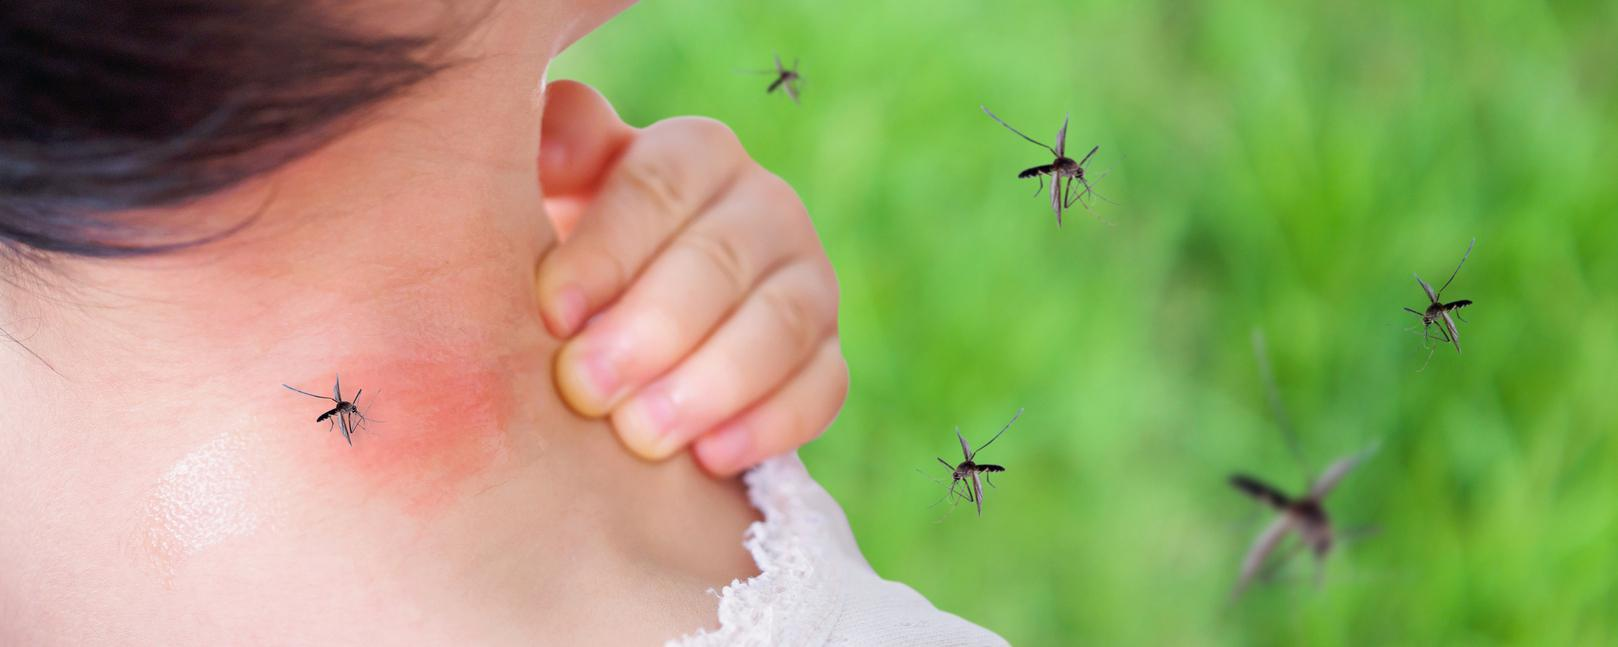 How To Treat Mosquito Bites The